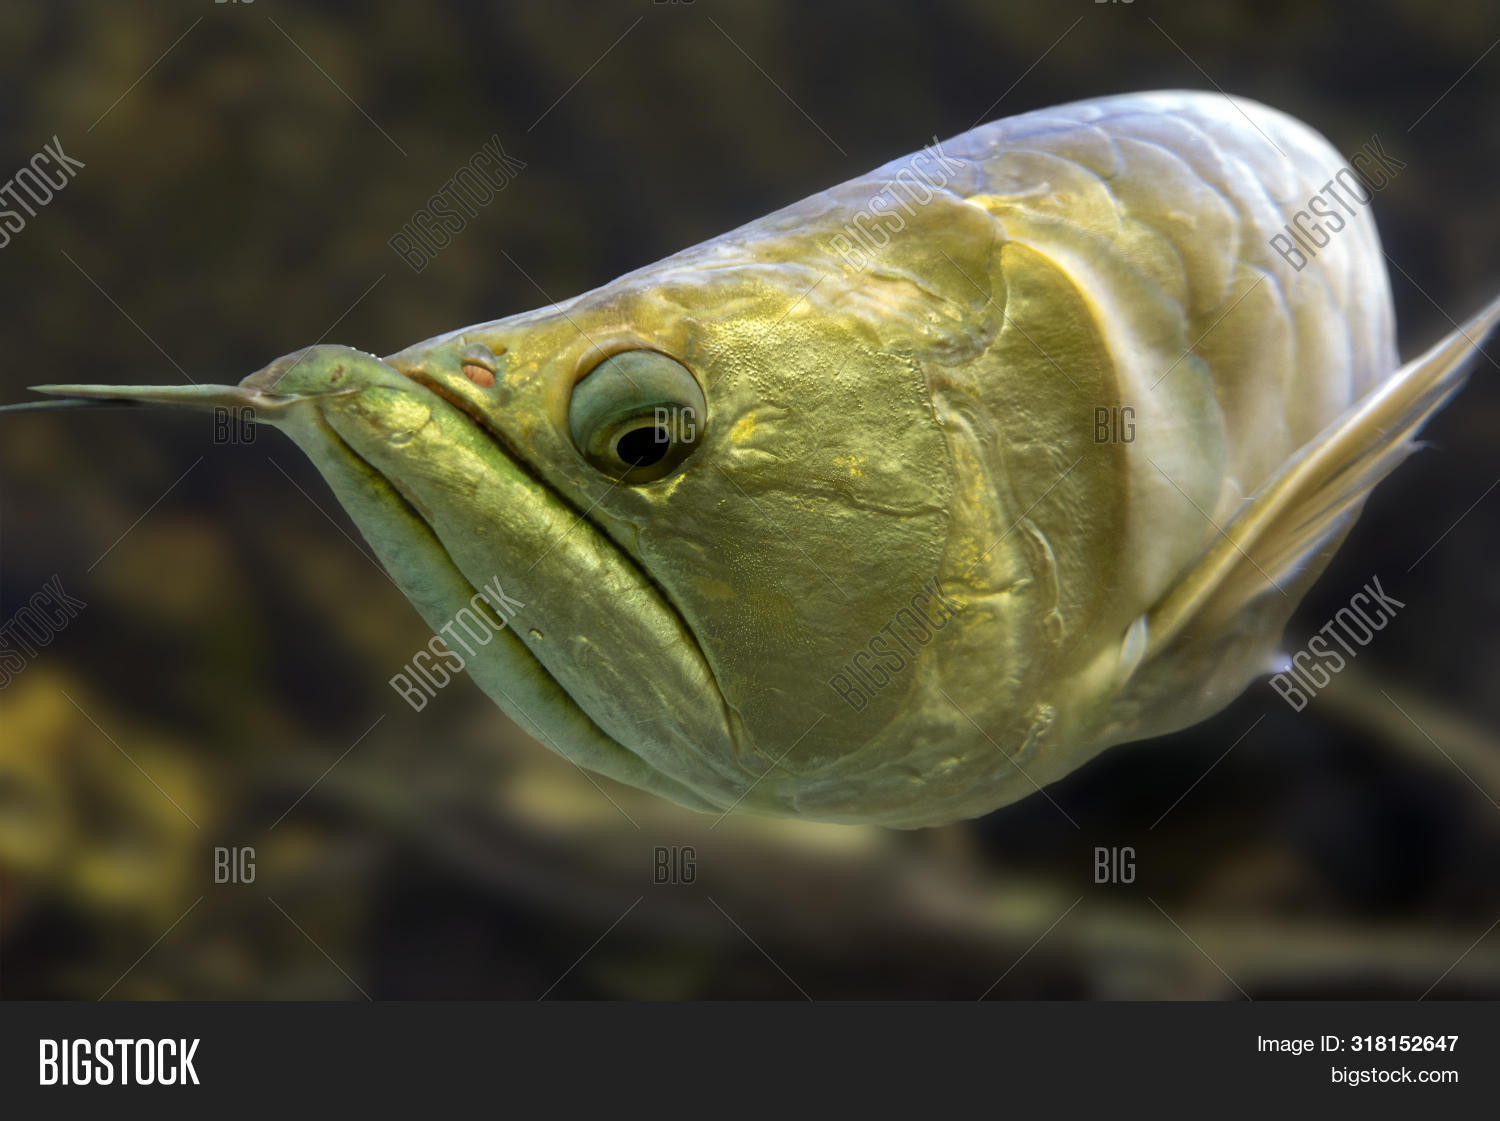 Exotic Silver Arowana Fish Closeup Photo. Detail